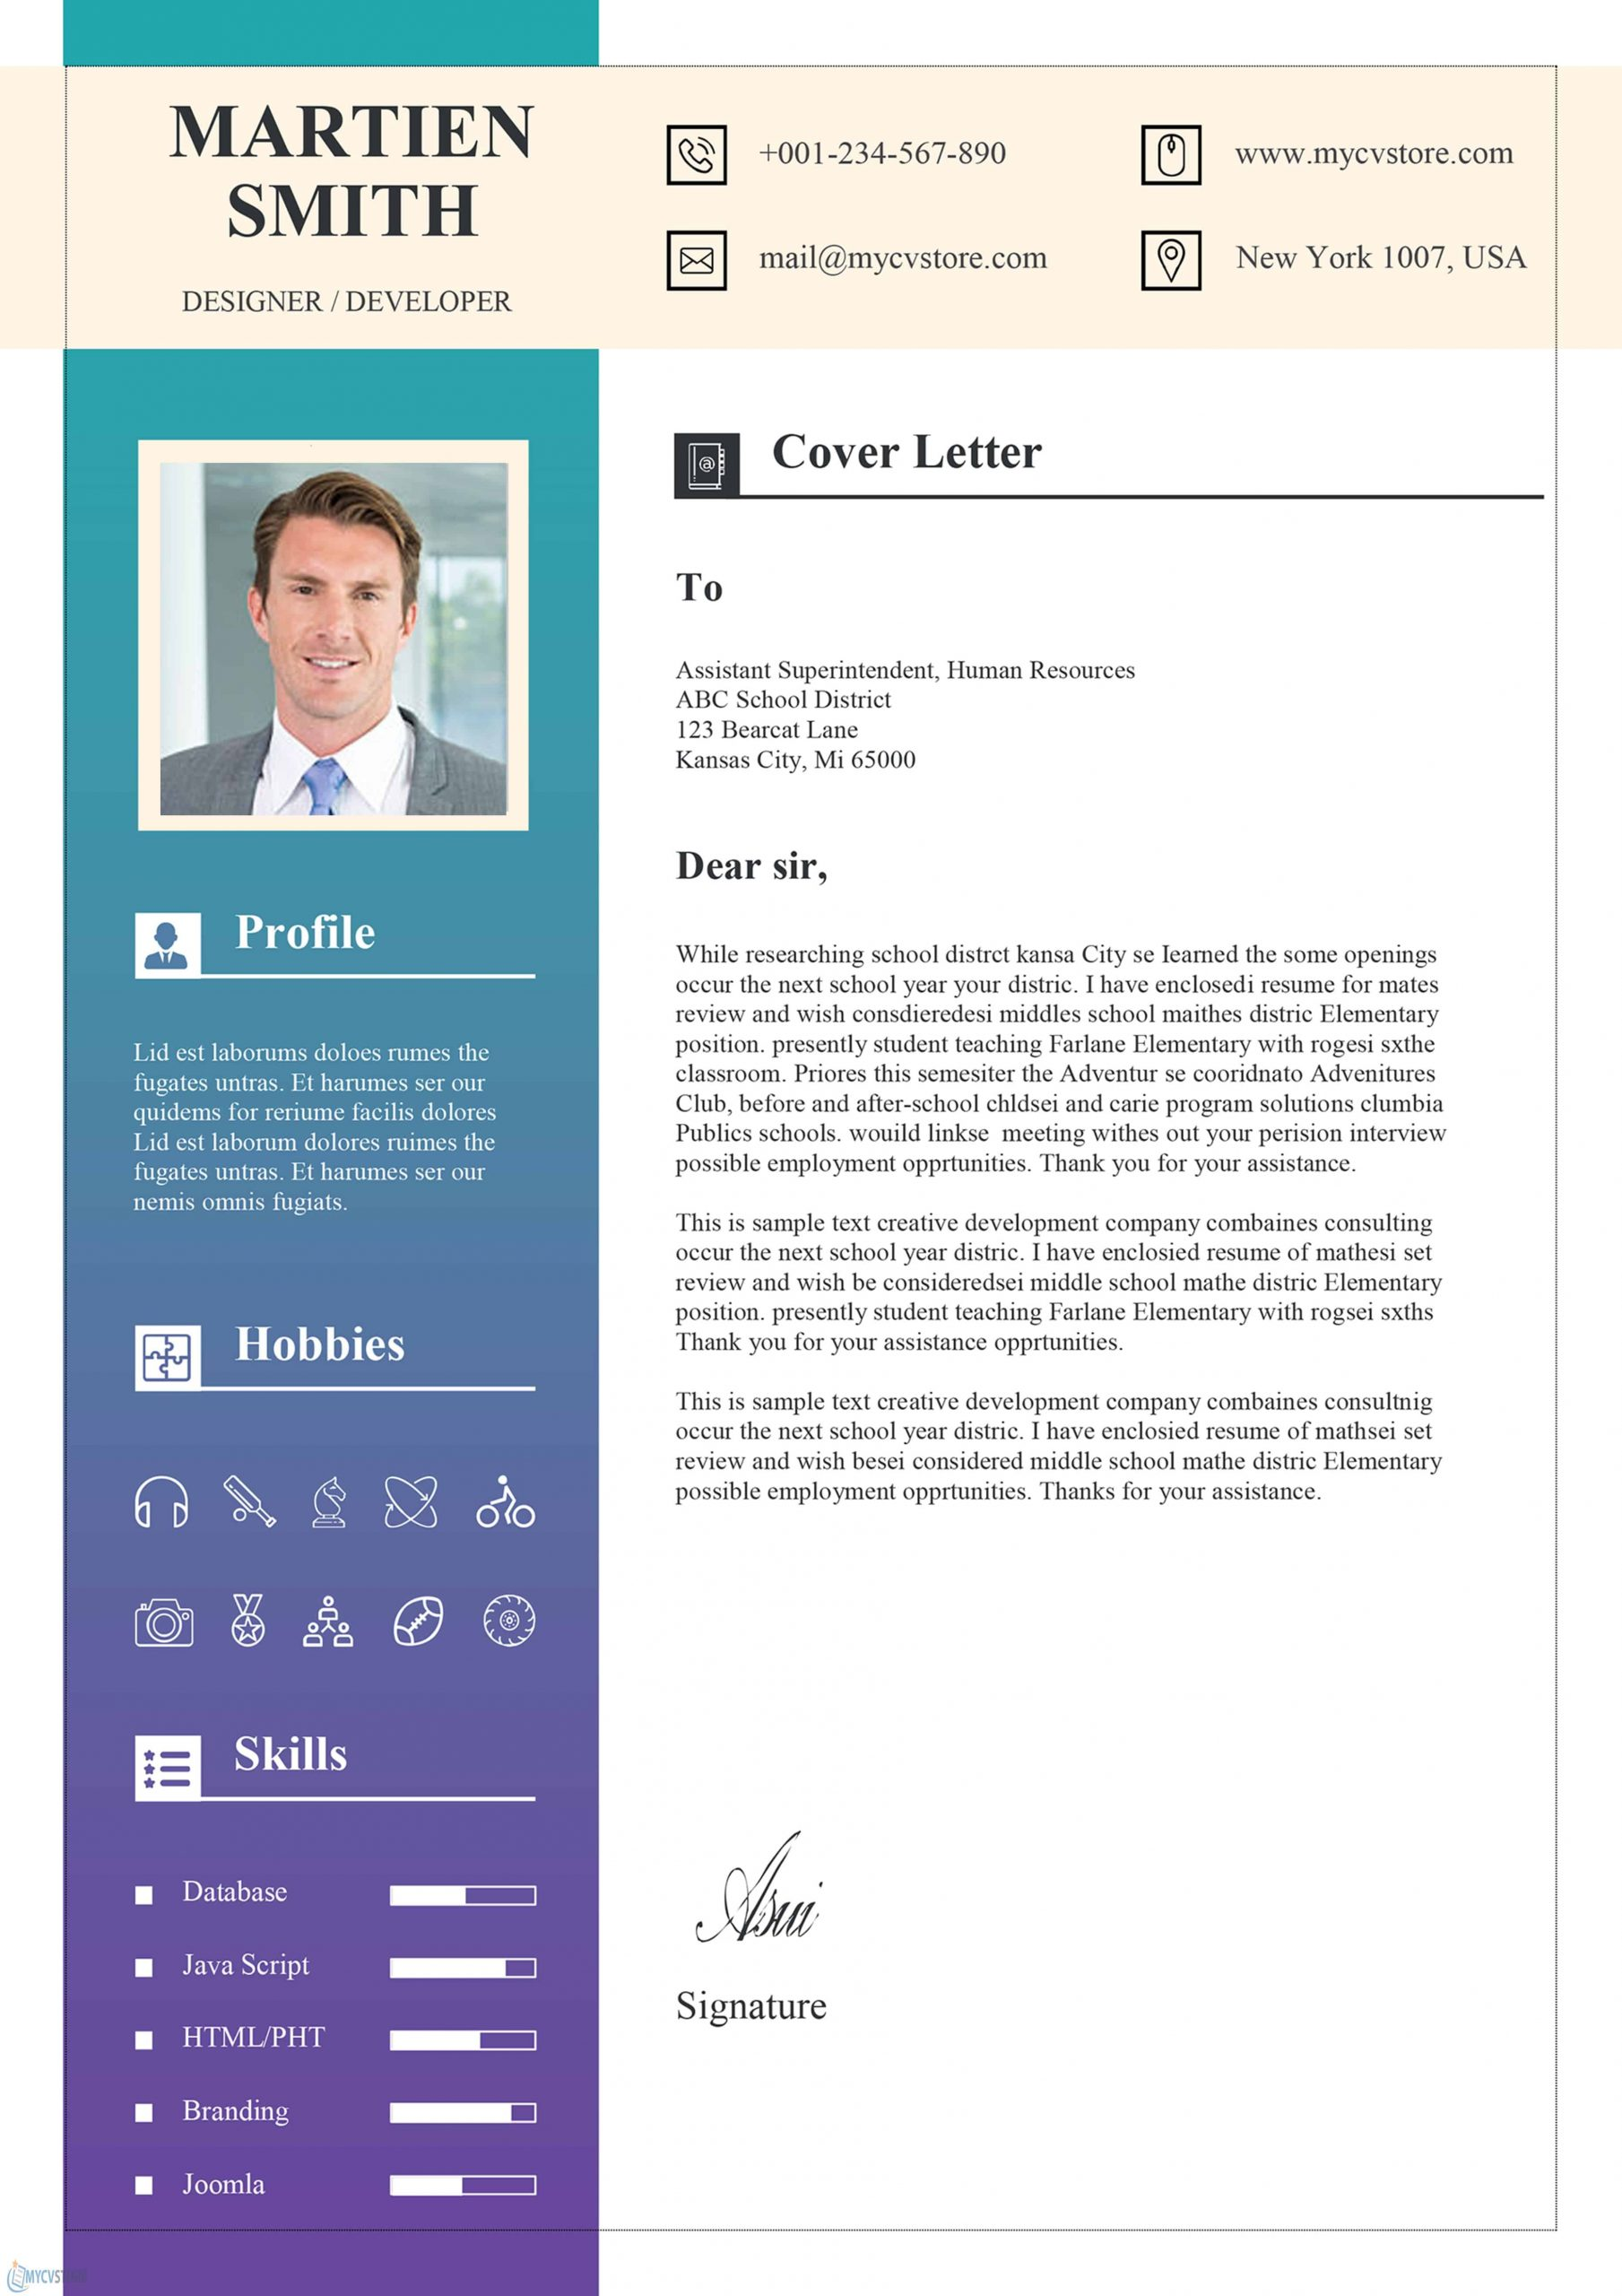 Cover Letter Design Template from www.mycvstore.com